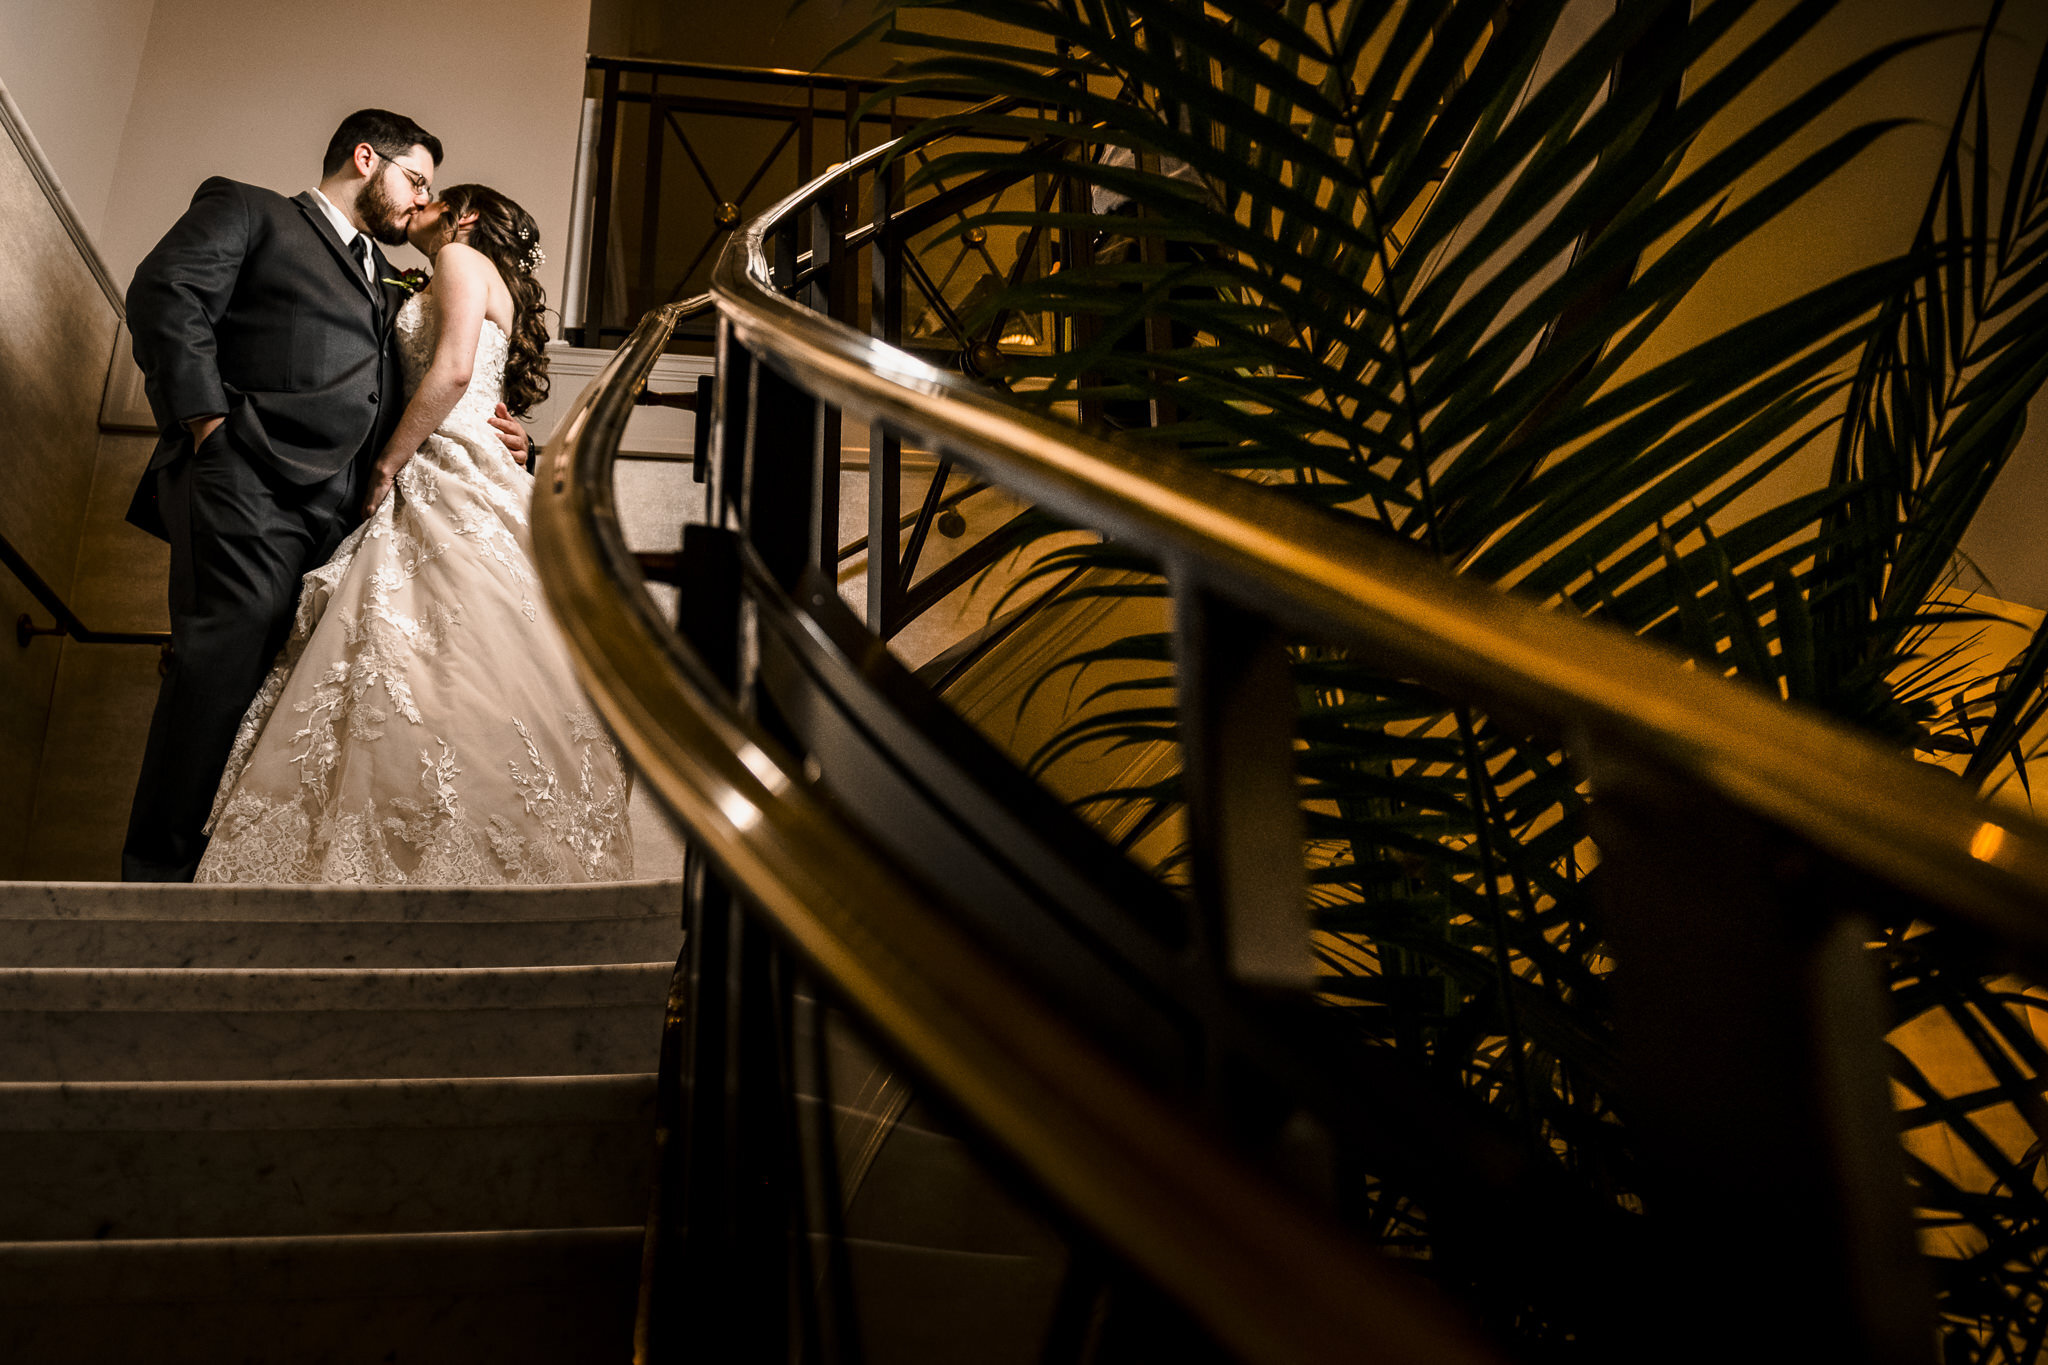 Brozenia-Ritz-Carlton-Philadelphia-Wedding-Photographer-18.JPG